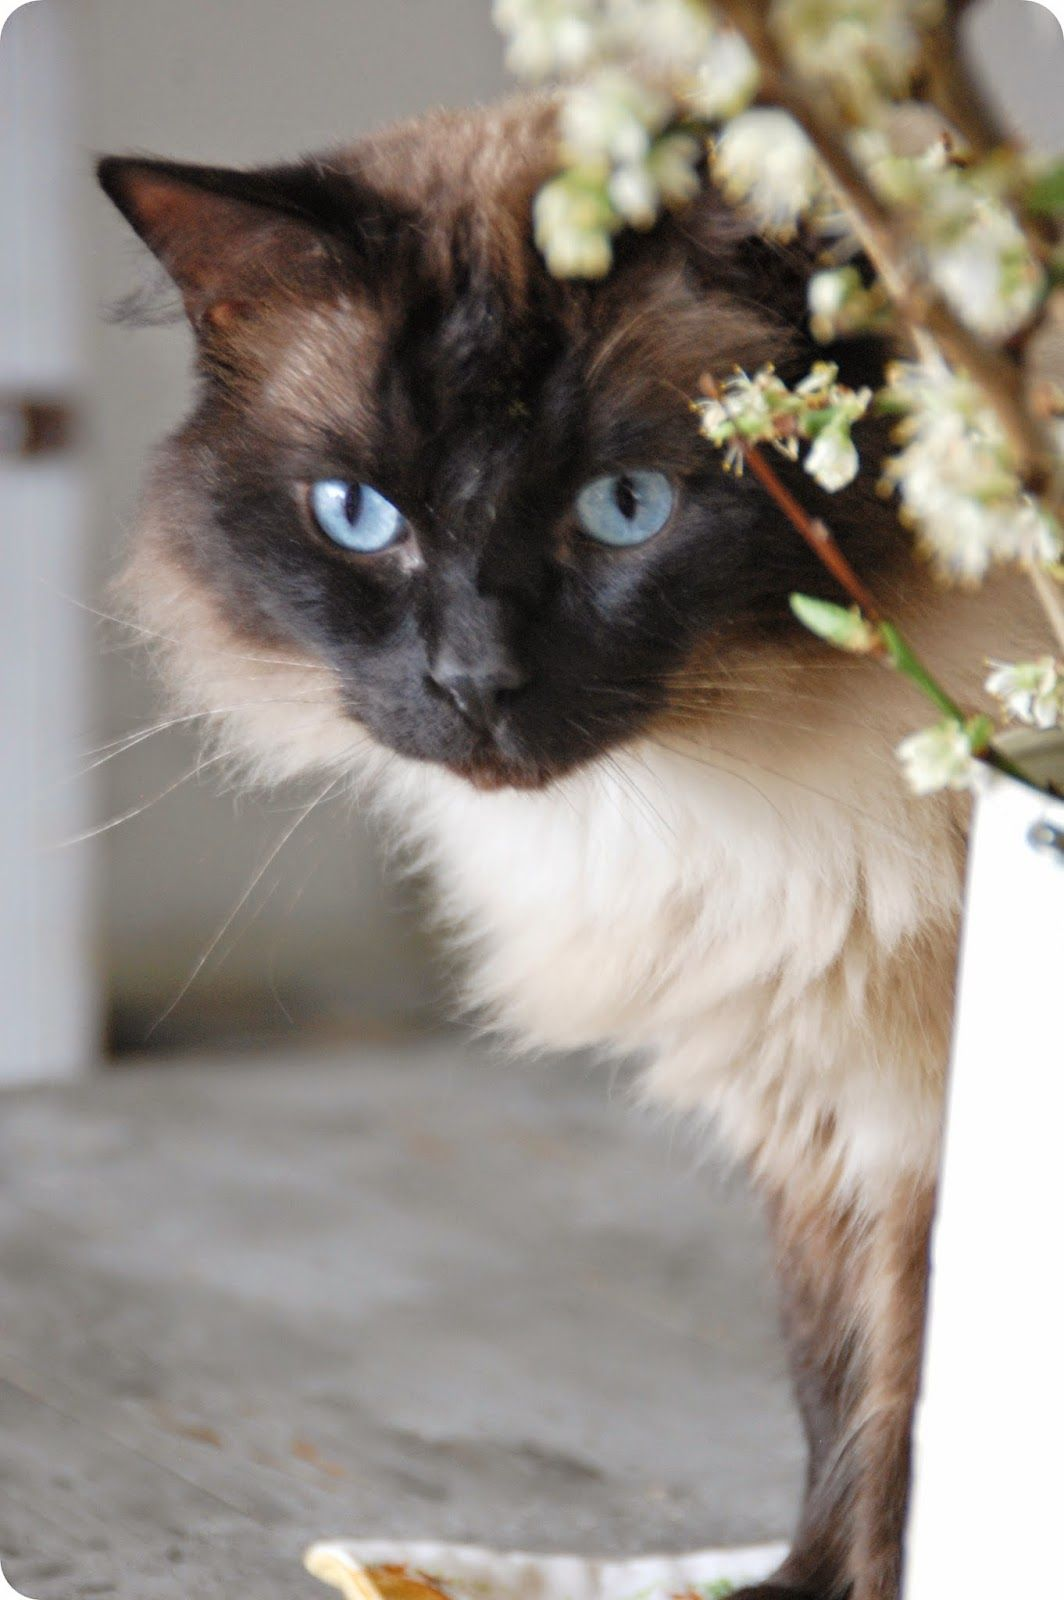 This is what my cat looks like Sheba, she's so beautiful!!